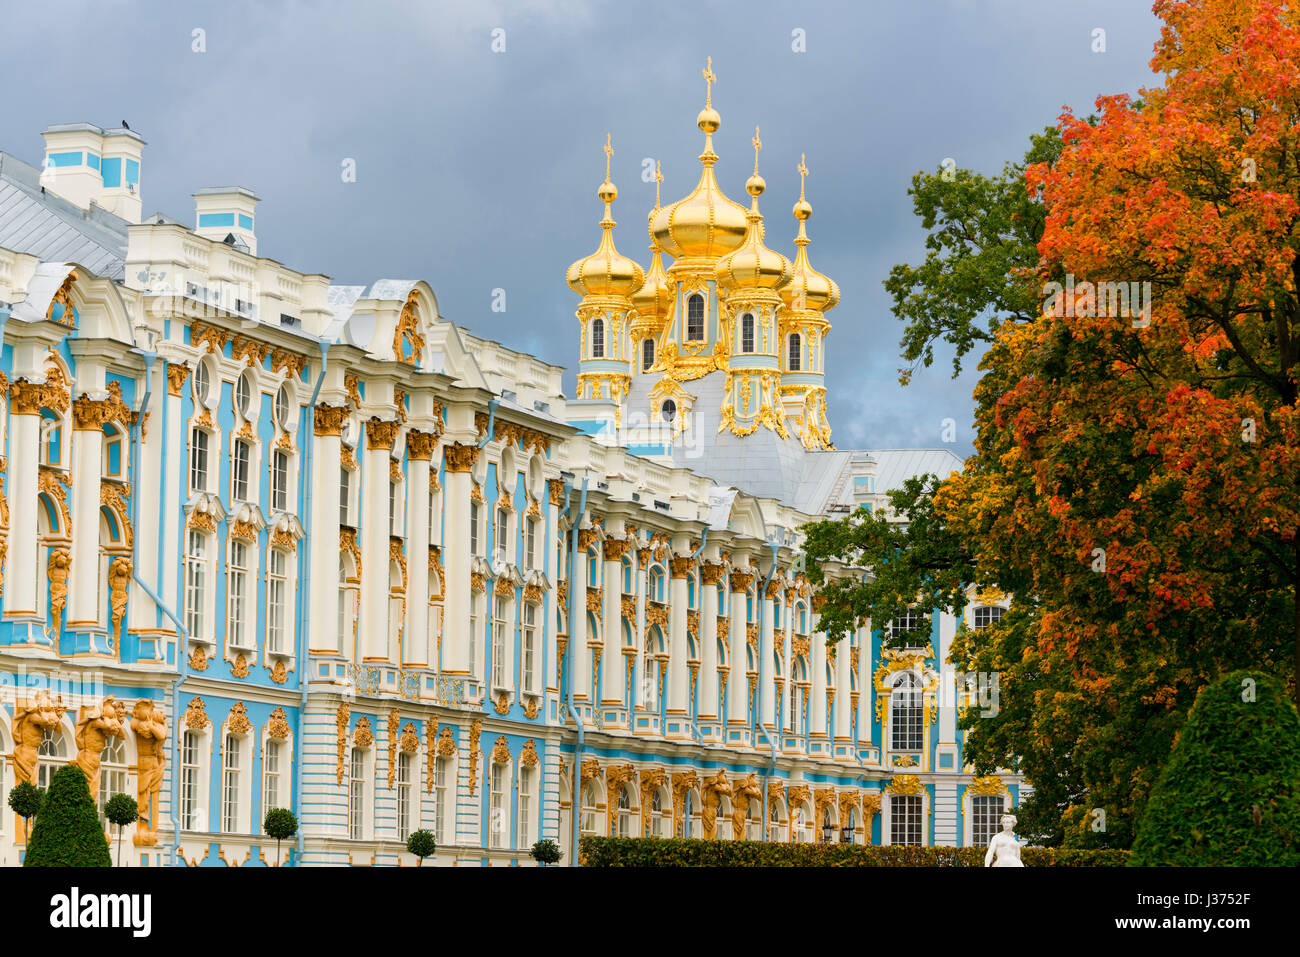 The Catherine Palace, Pushkin, near Saint Petersburg, Russia - Stock Image